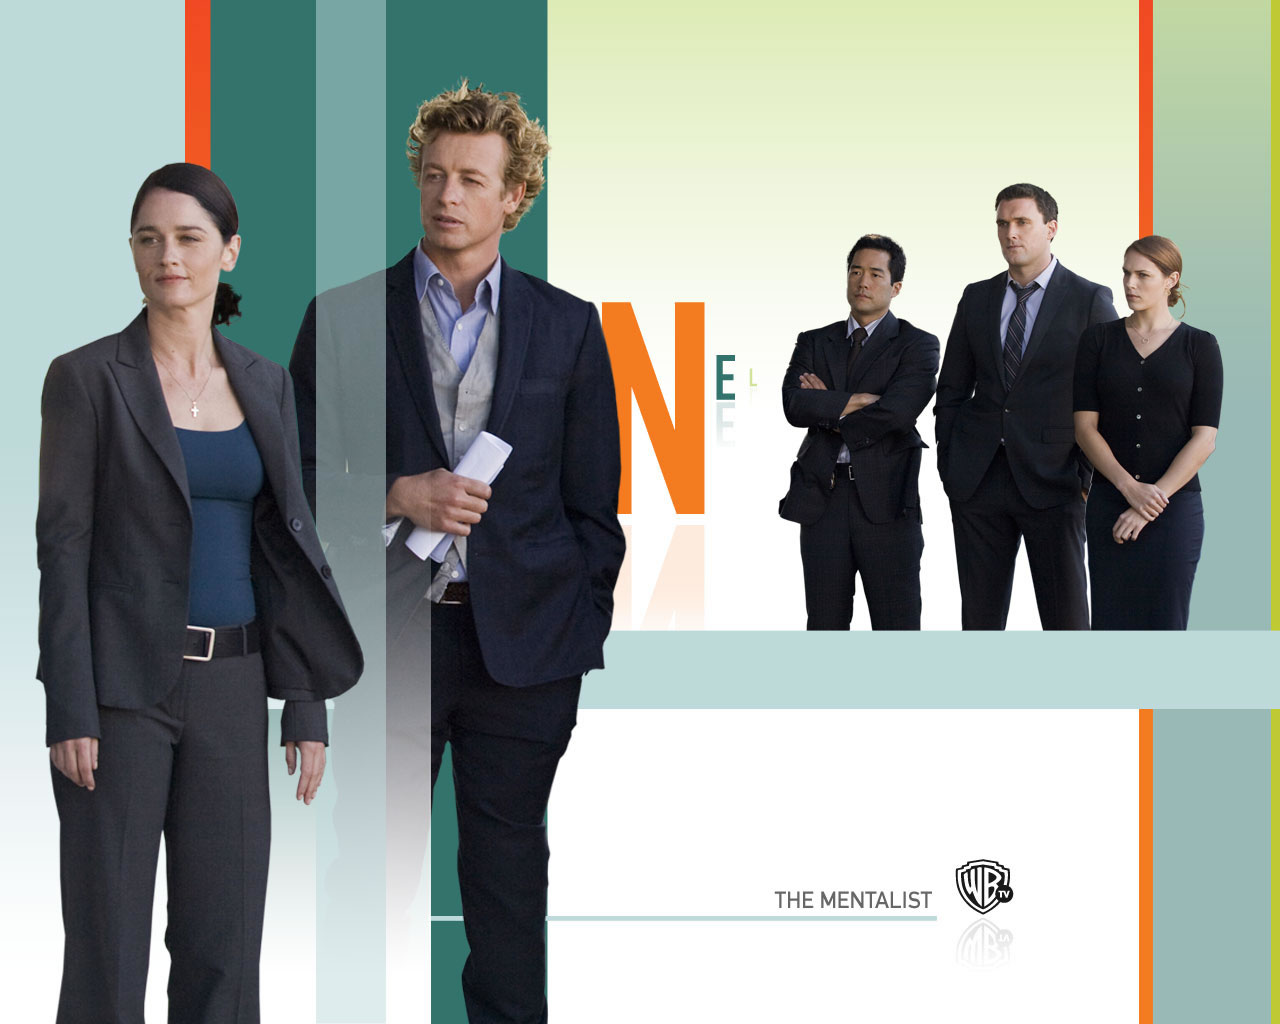 The Mentalist wallpaper 12